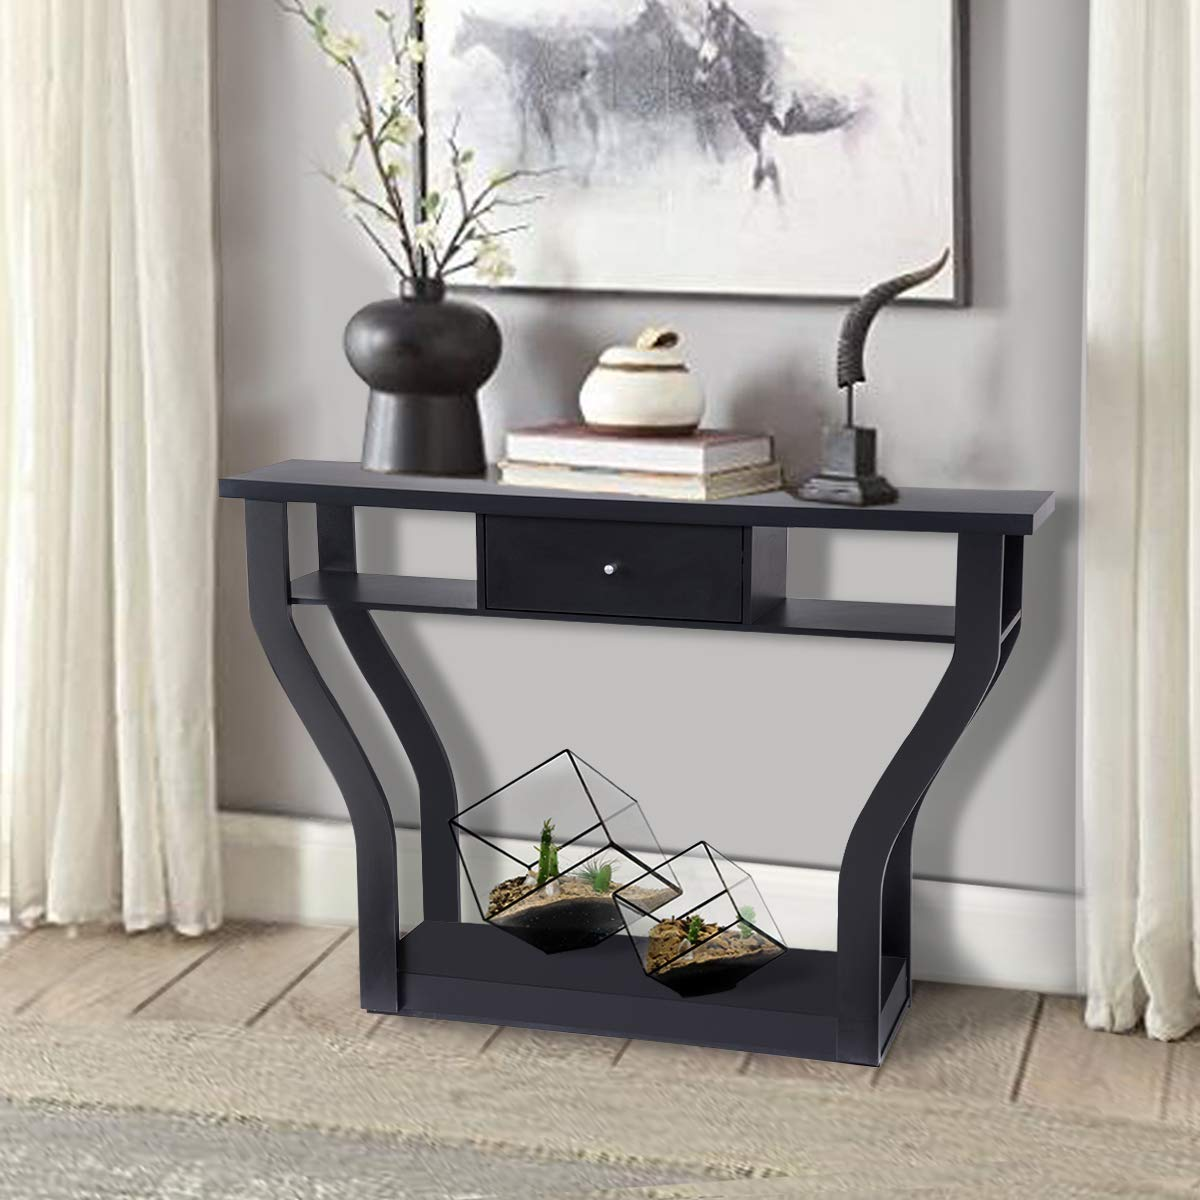 Giantex Console Hall Table for Entryway Small Space Sofa Side Table with Storage Drawer and Shelf Home Office Living Room Furniture Narrow Accent Hall Table (Black)